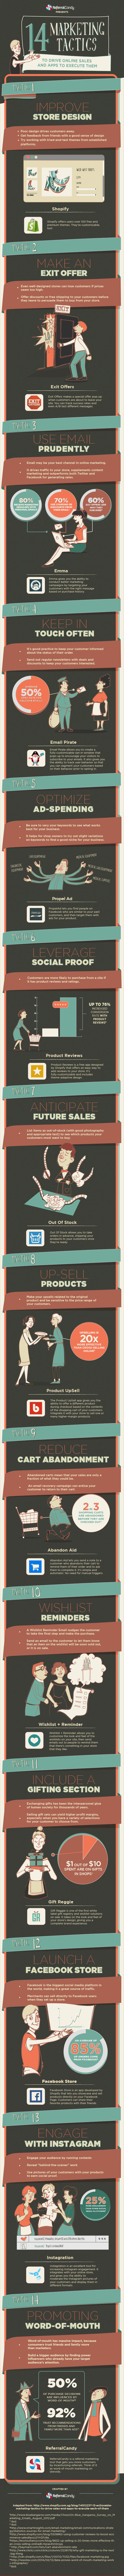 Ways-to-Improve-Online-Sales